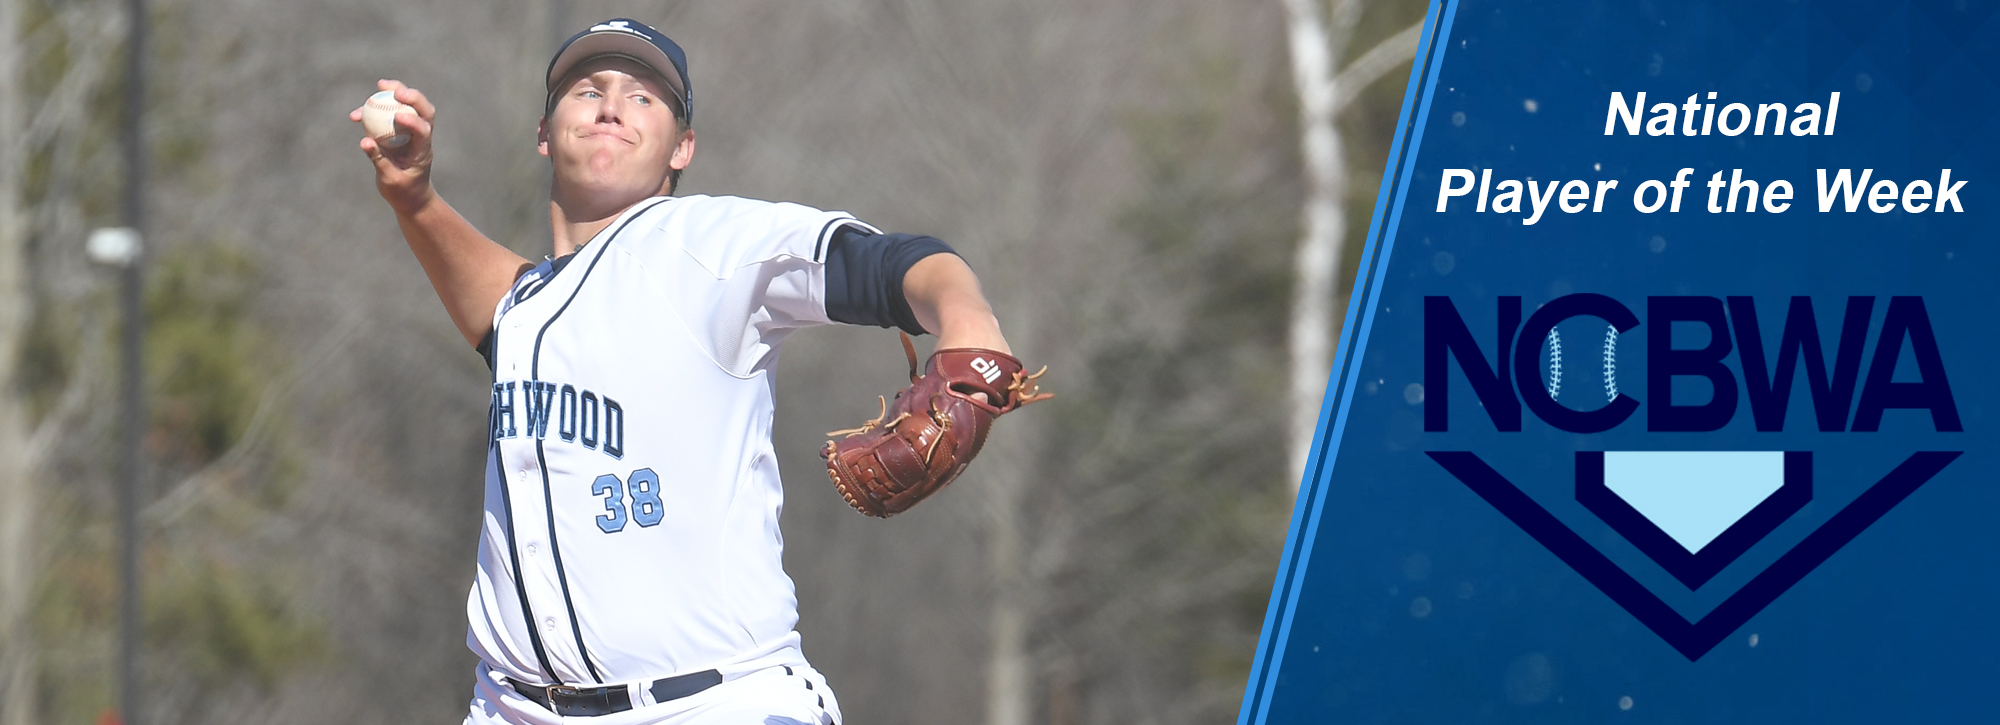 Northwood's Bain is named NCBWA National Pitcher of the Week